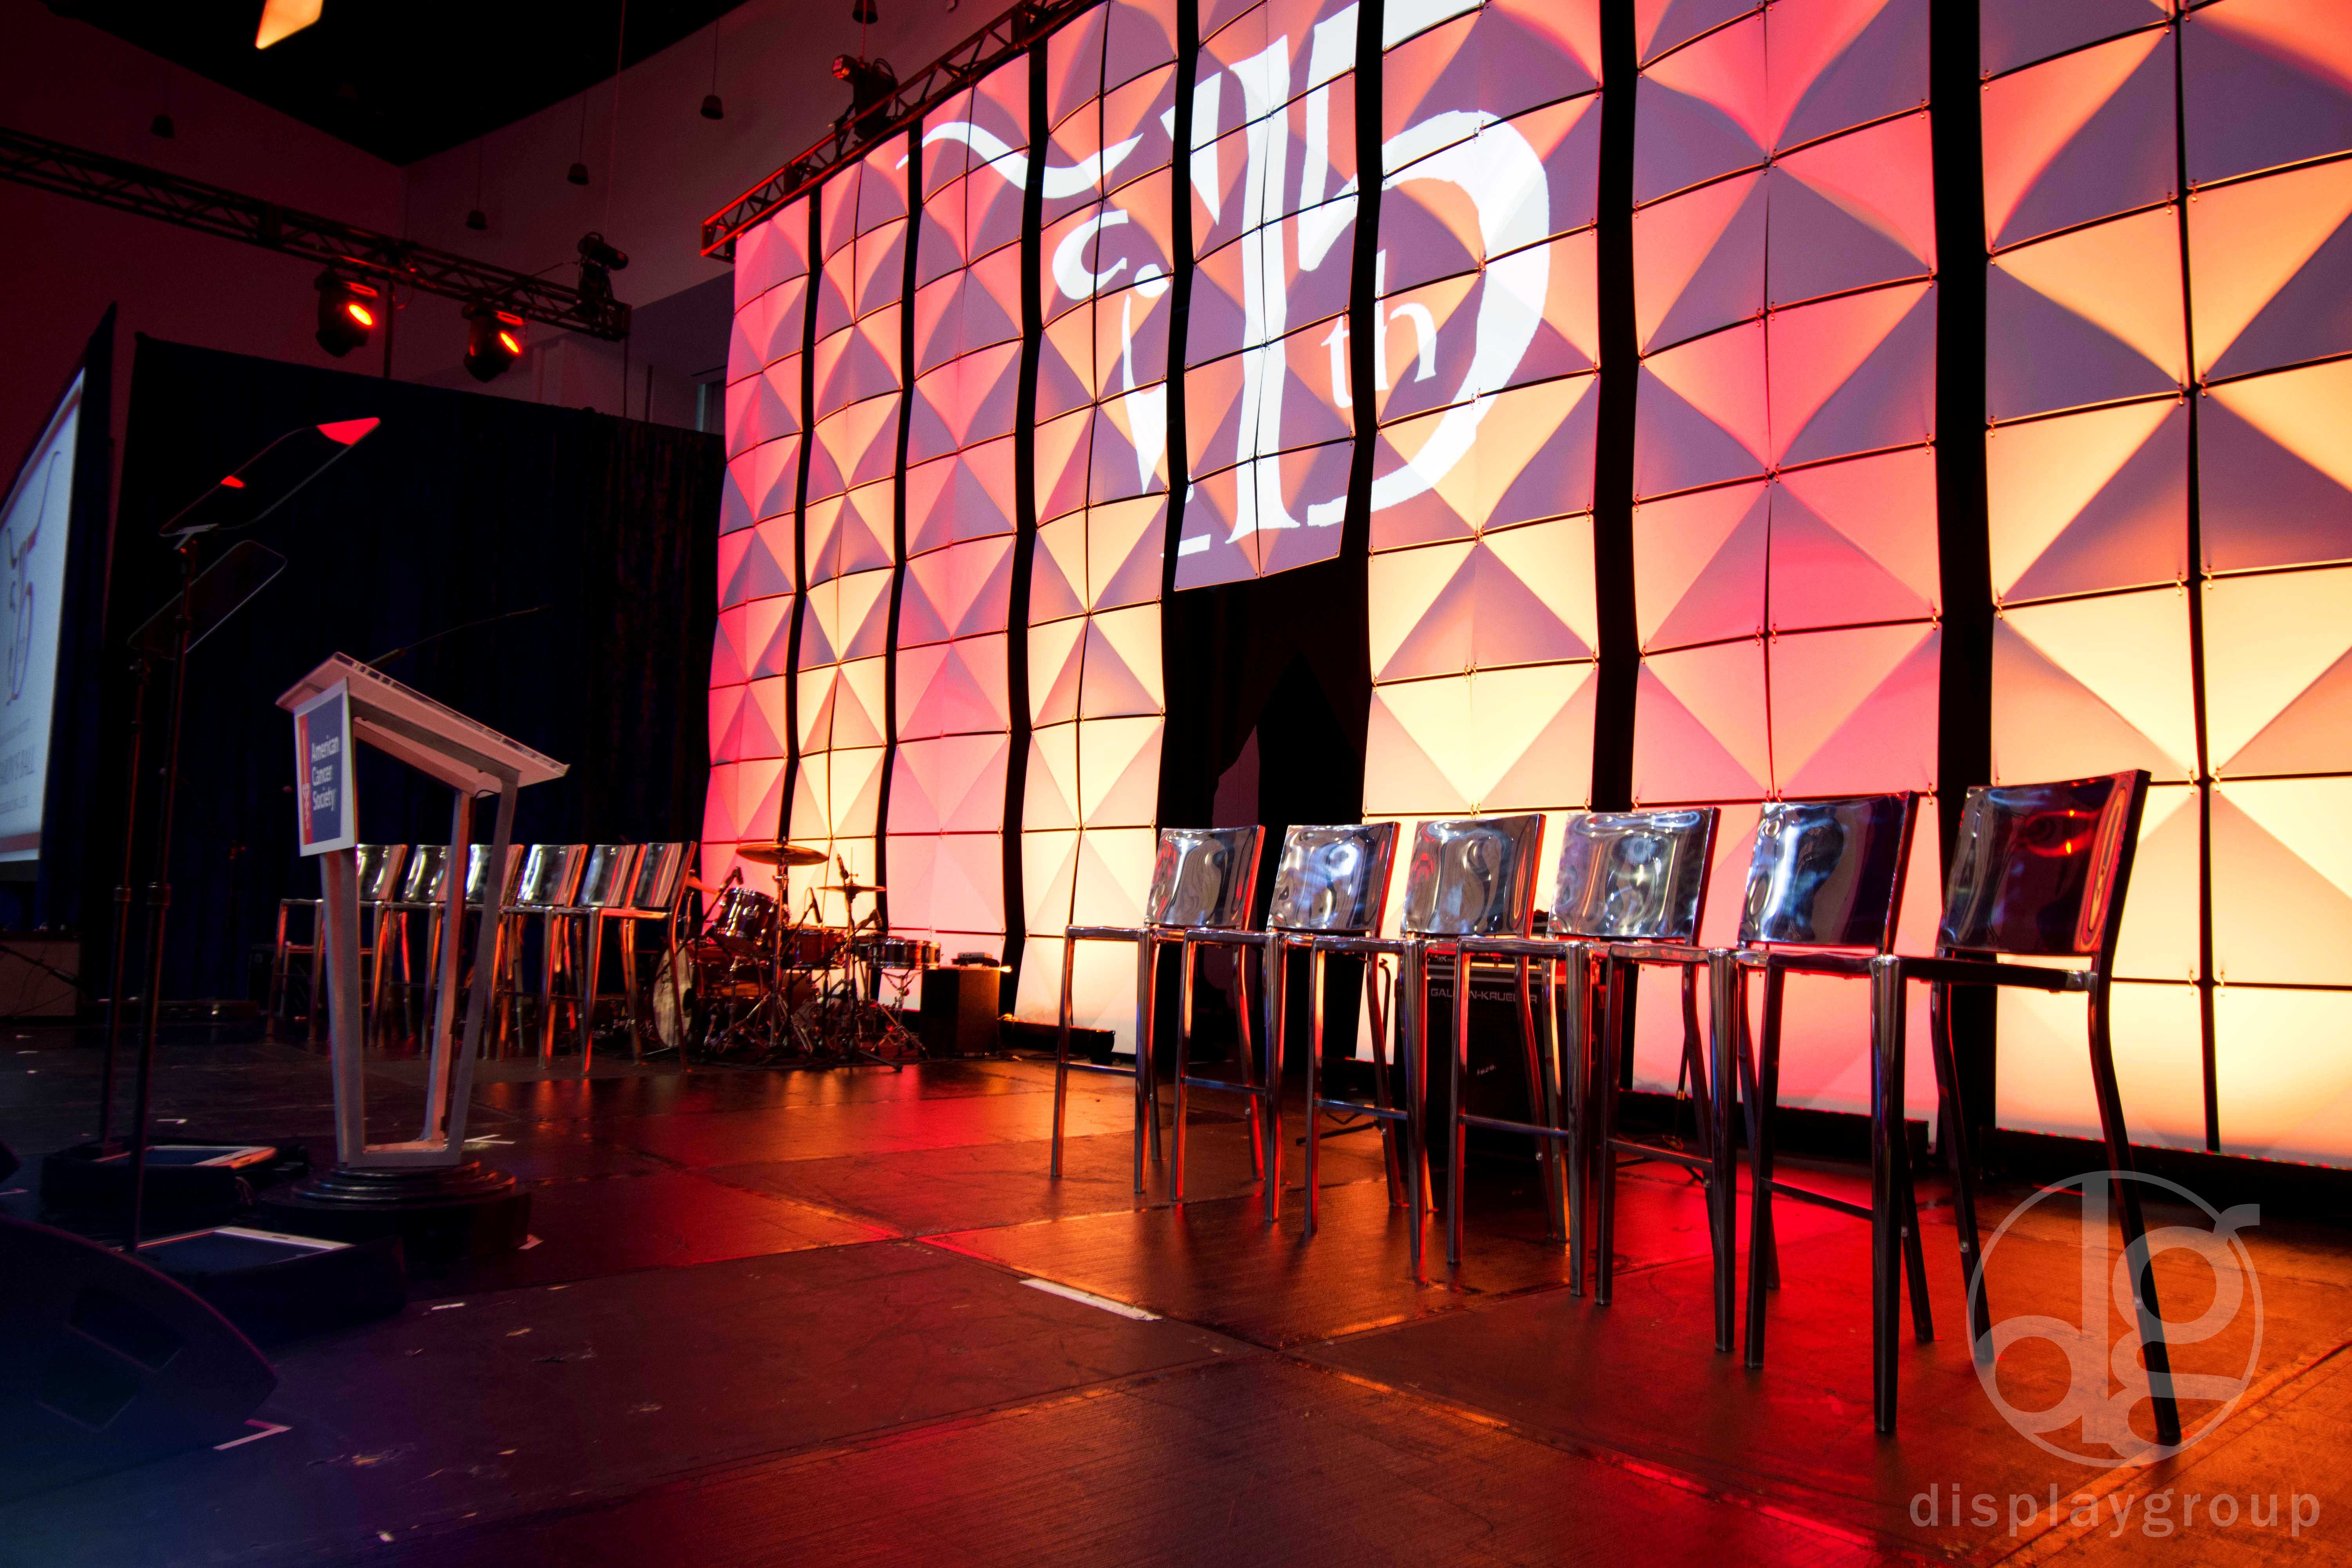 This Fiery Stage Set Will Elevate Your Next Event Displaygroup